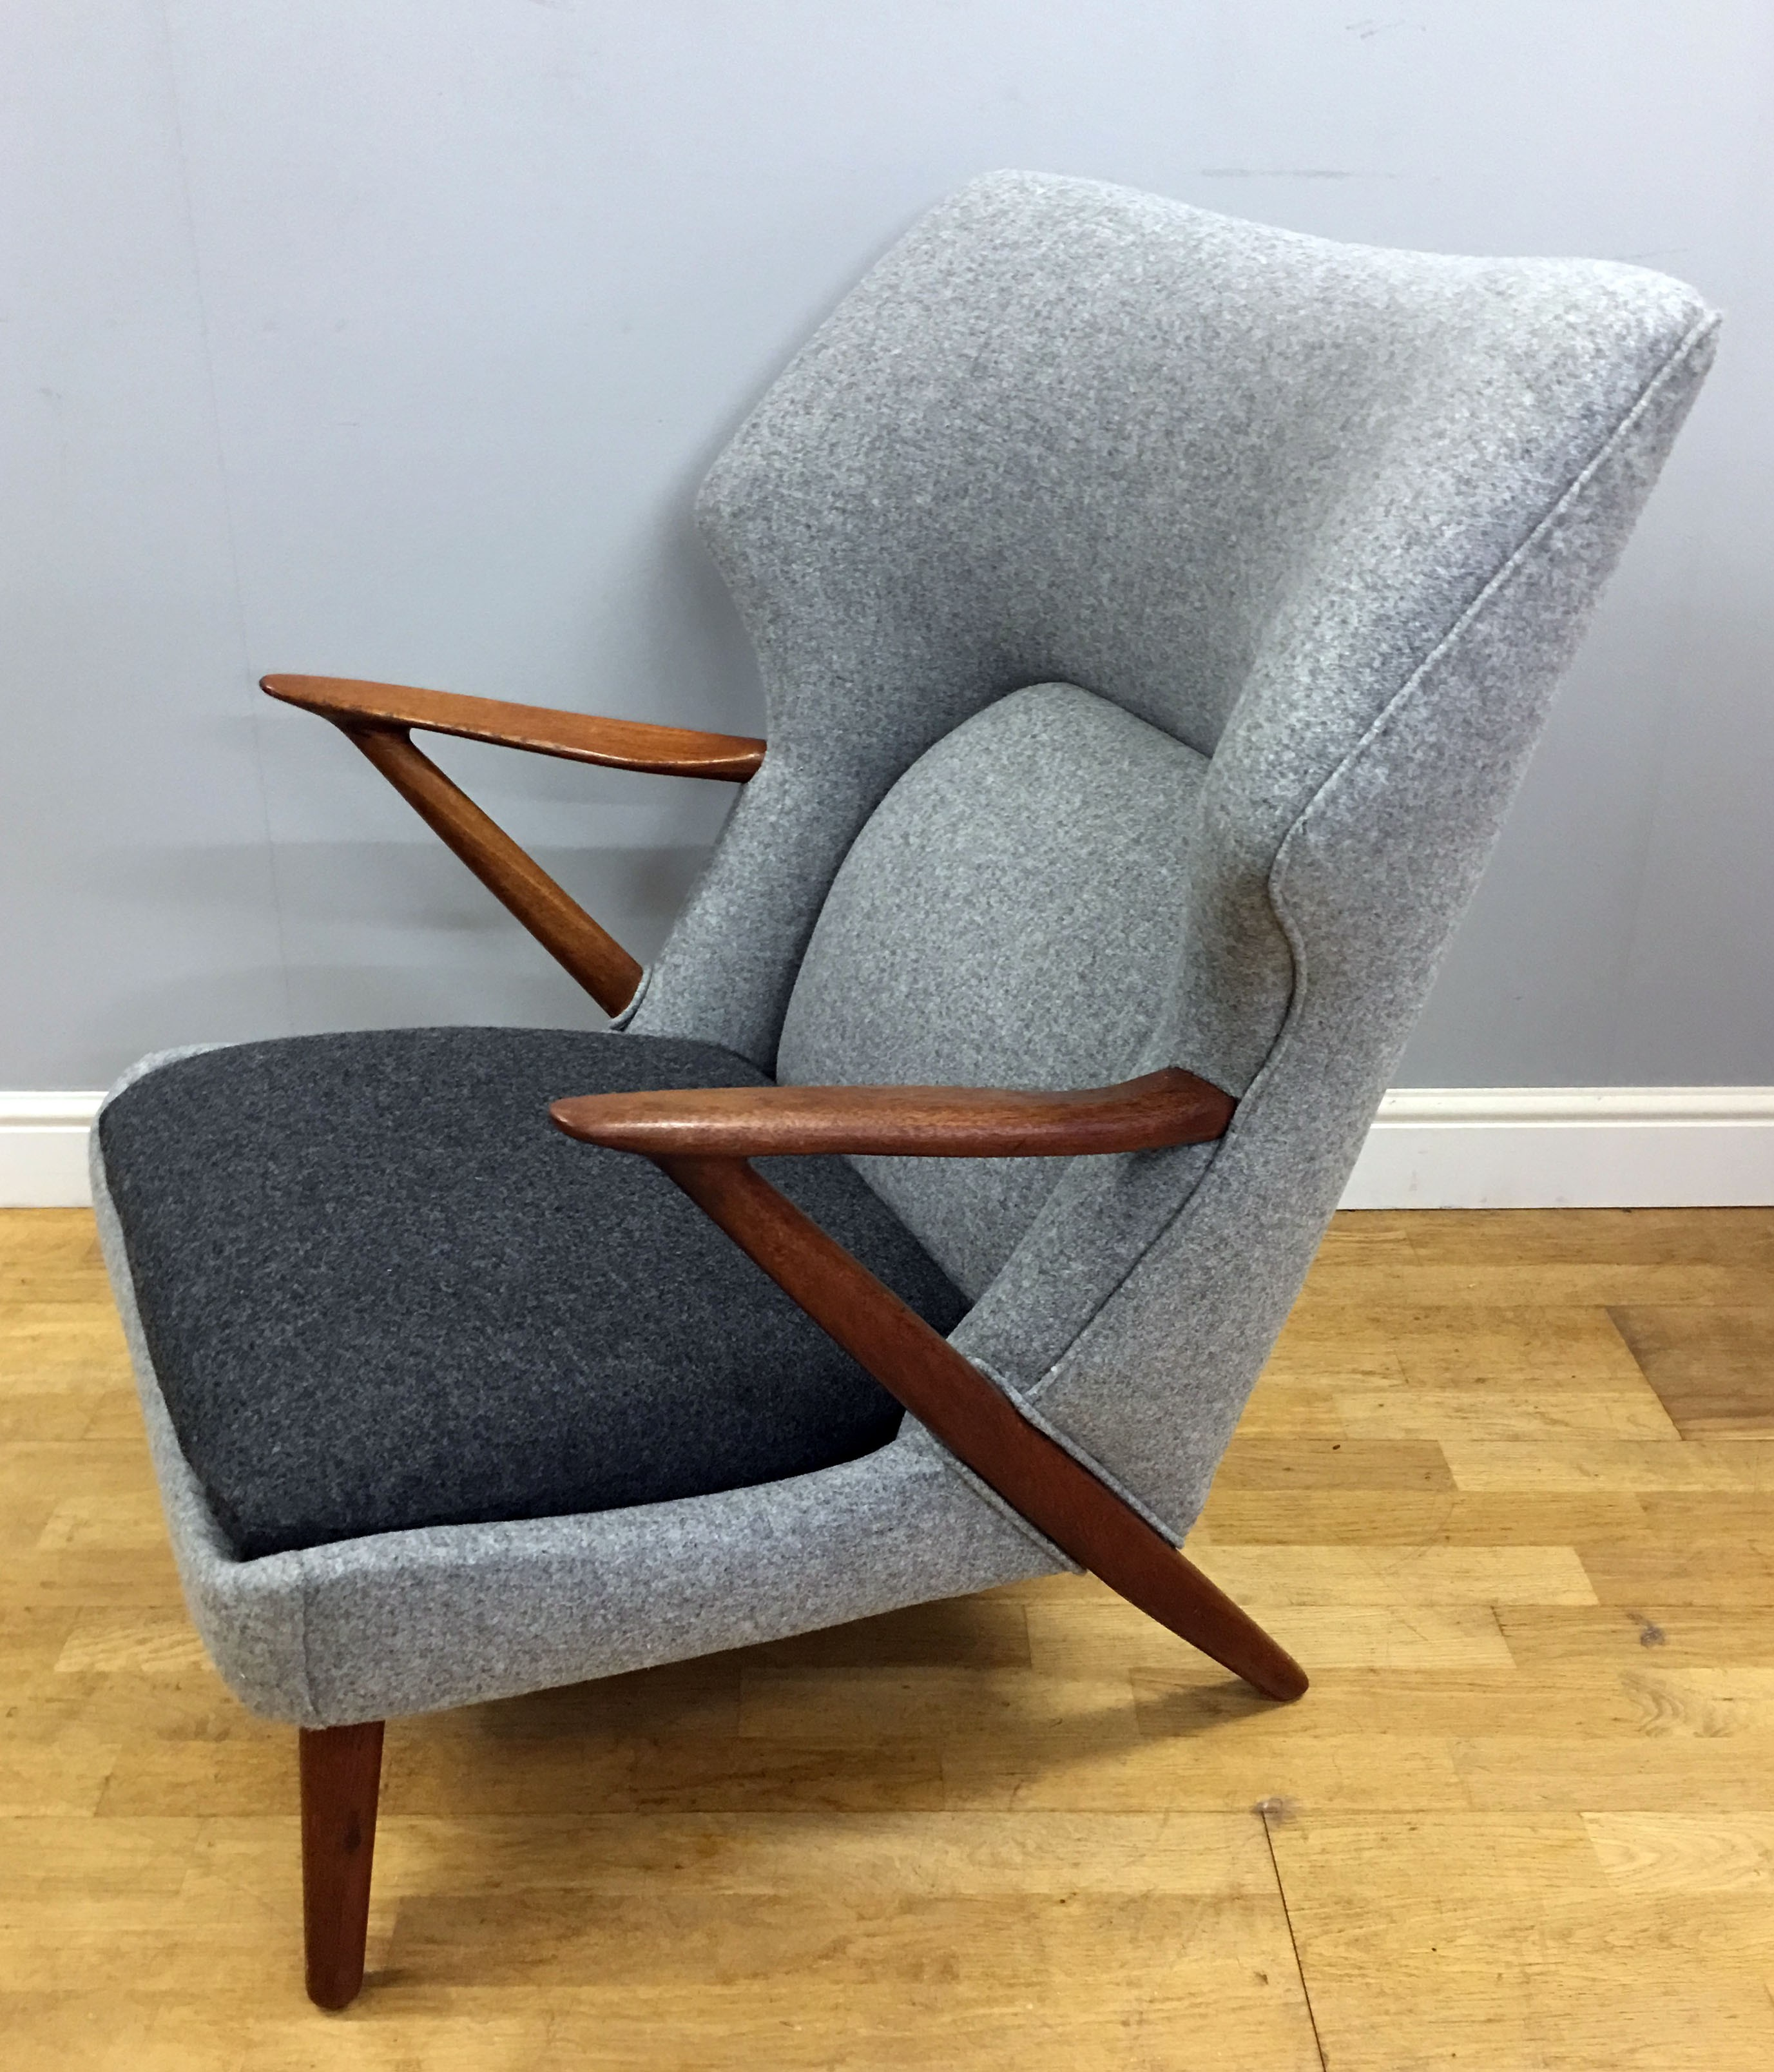 Slagelse Mobelvaerk grey lounge chair Kurt OLSEN 1950s Design